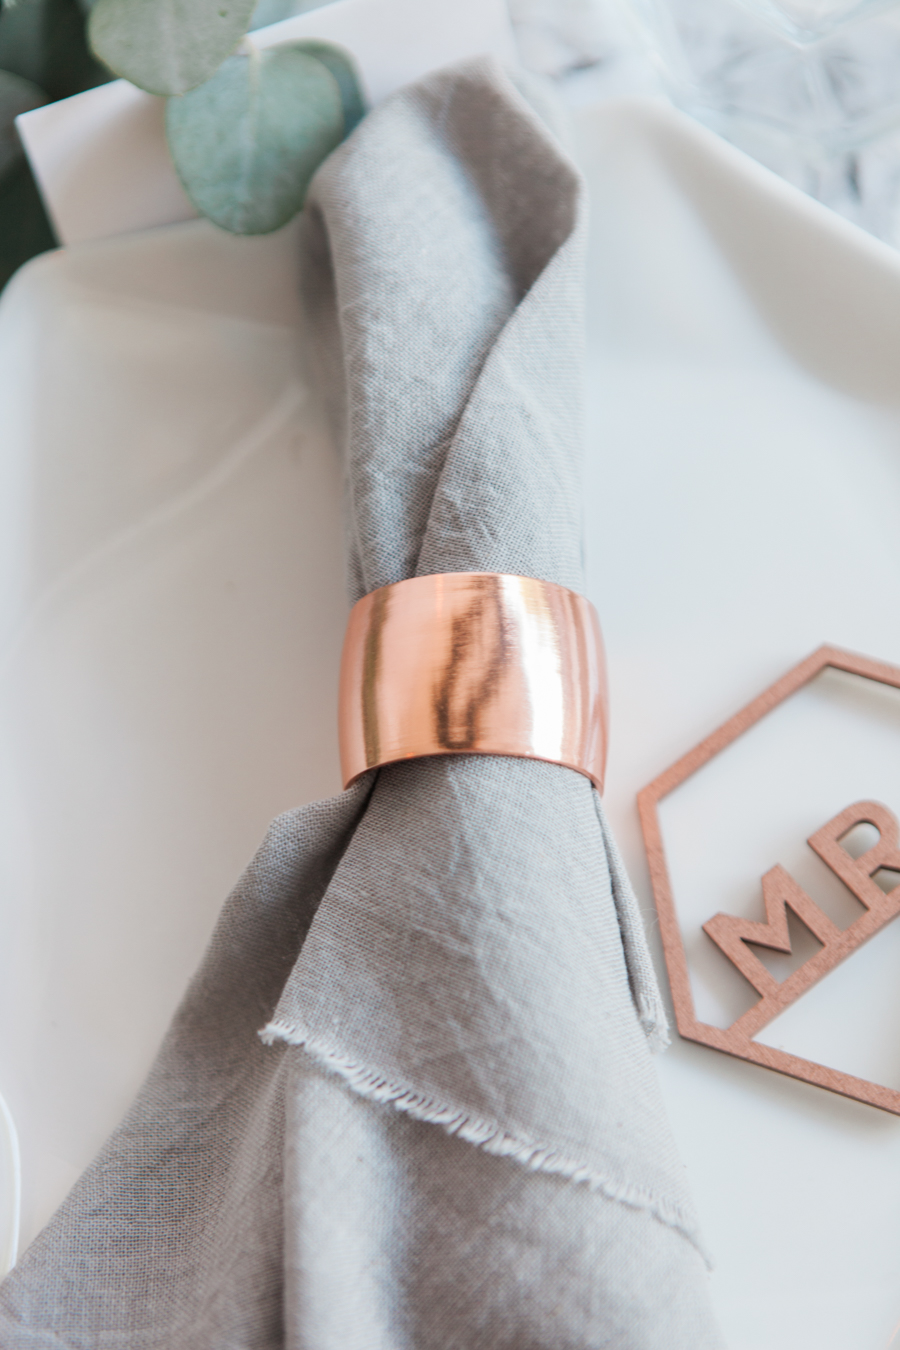 Copper metallic and succulent wedding style ideas, images by Amanda Karen Photography (11)